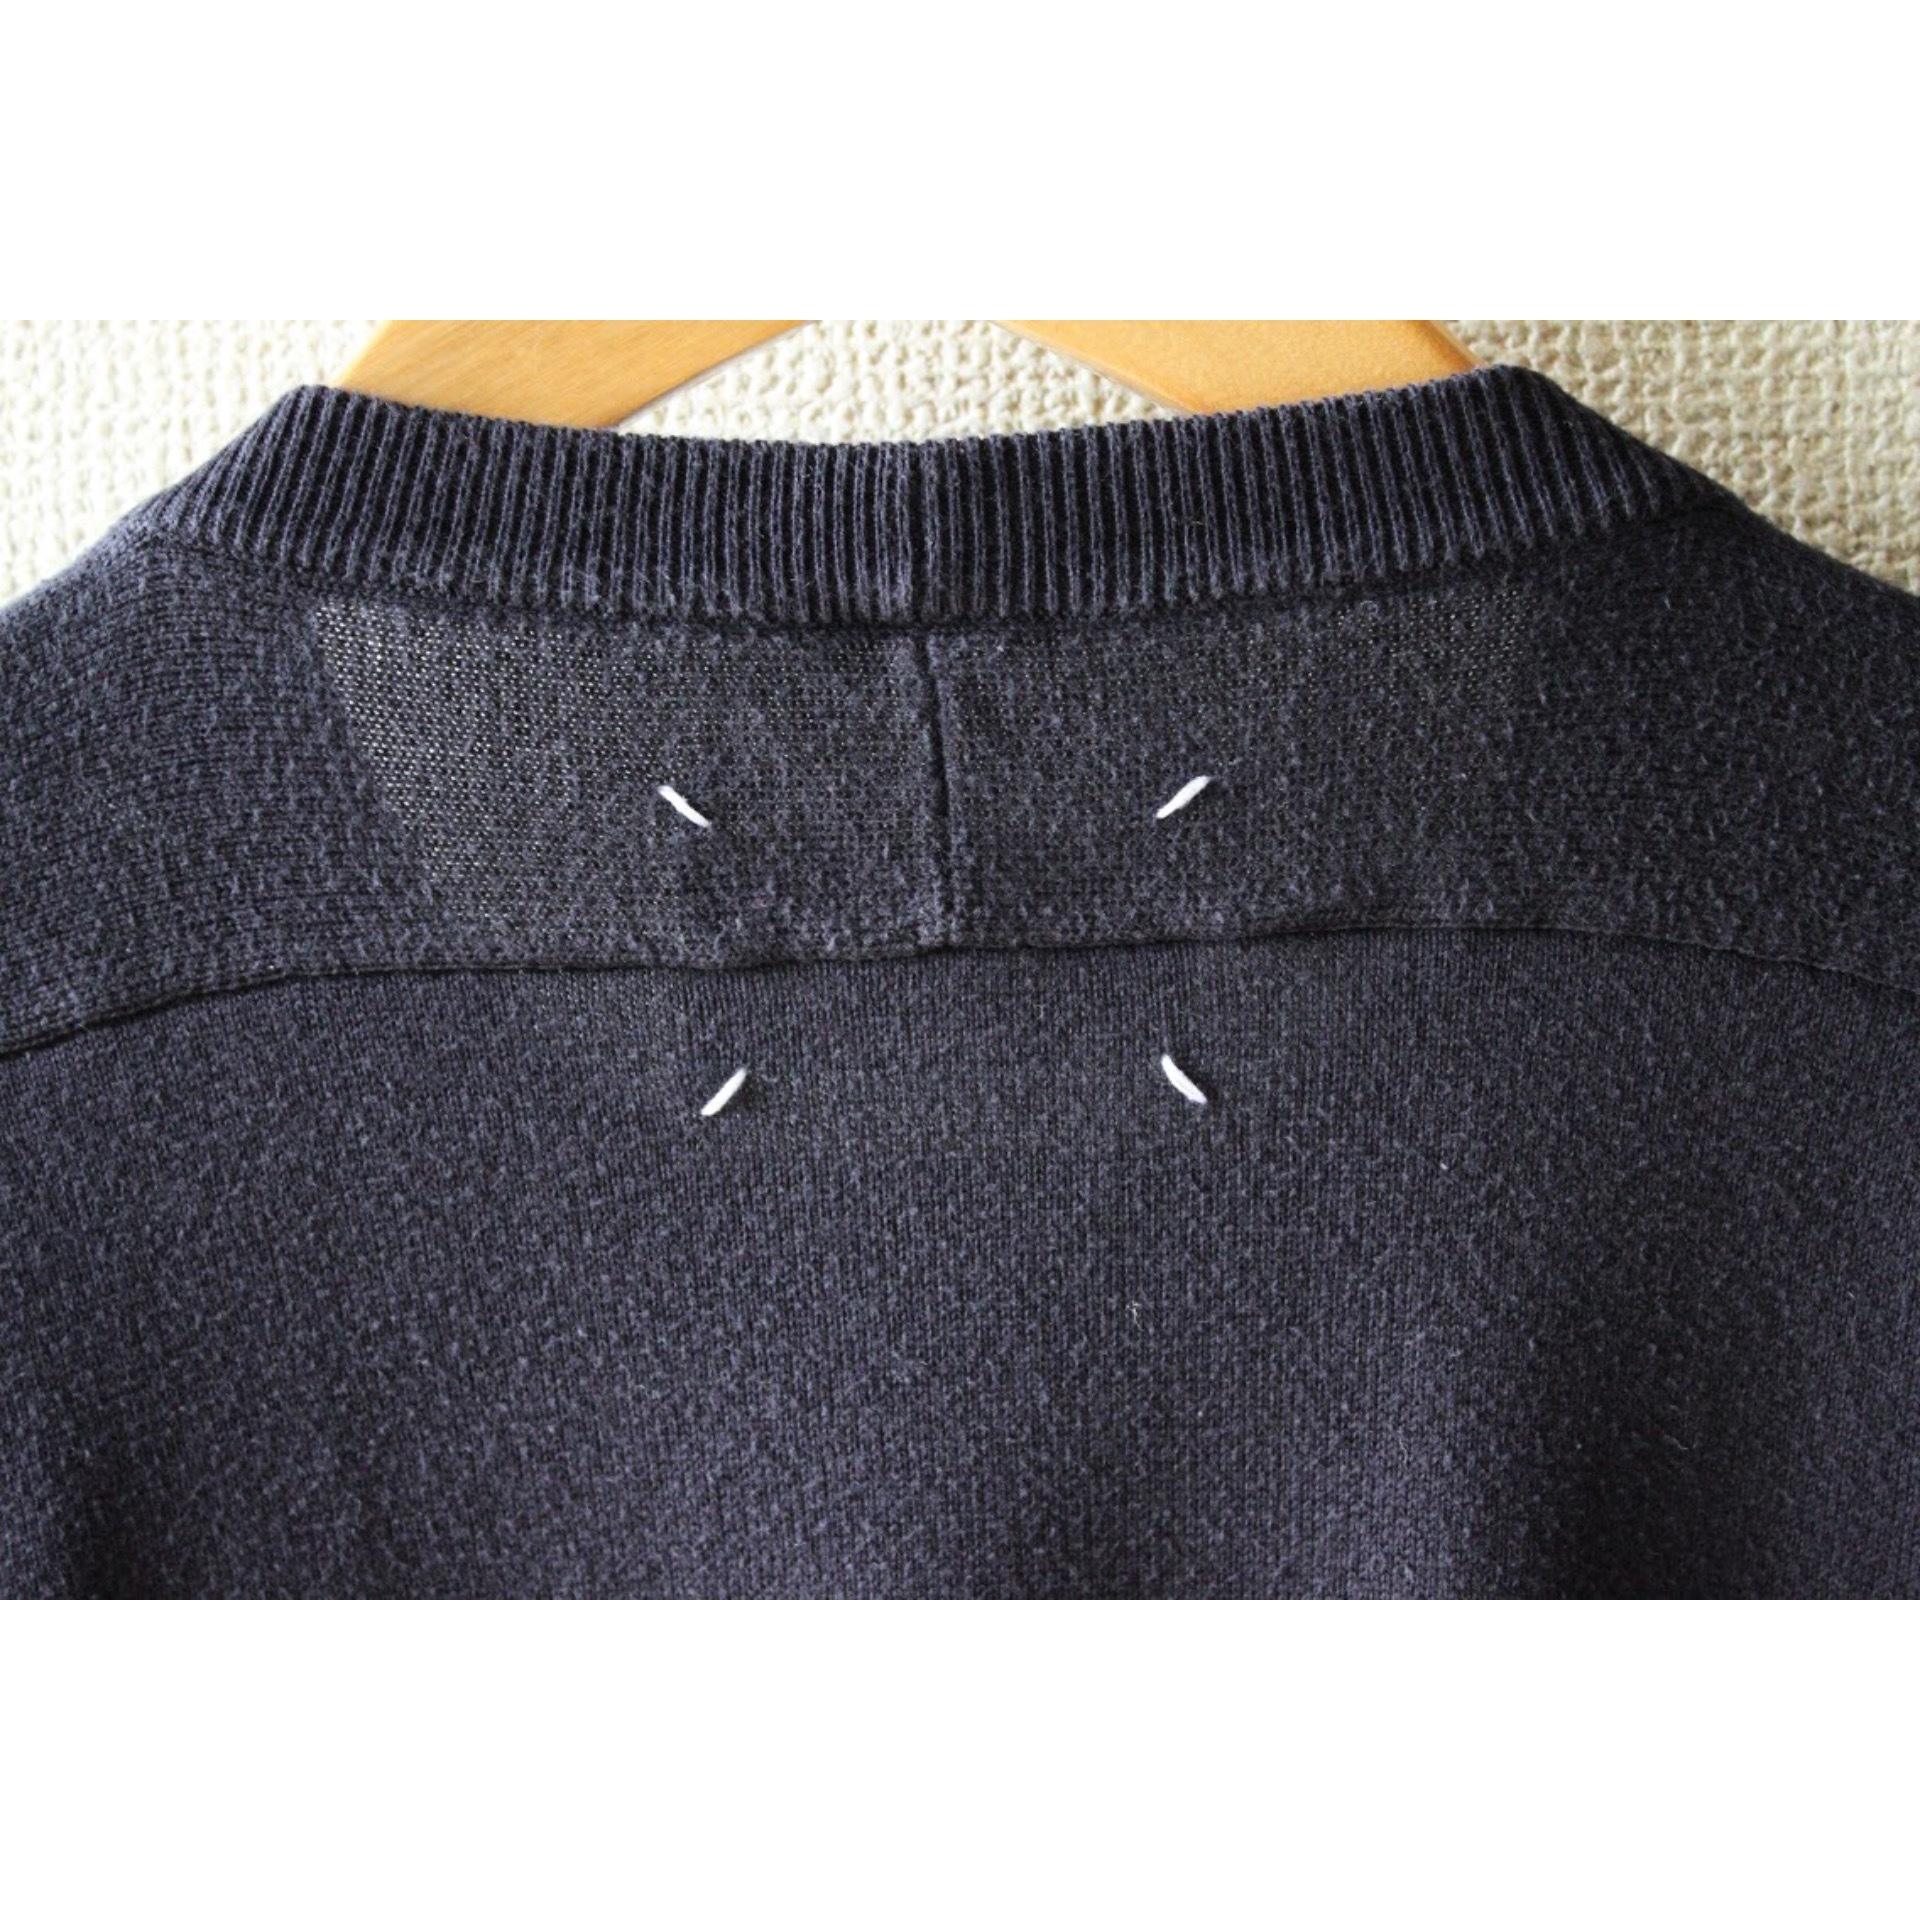 Elbow patch sweater by Maison Margiela